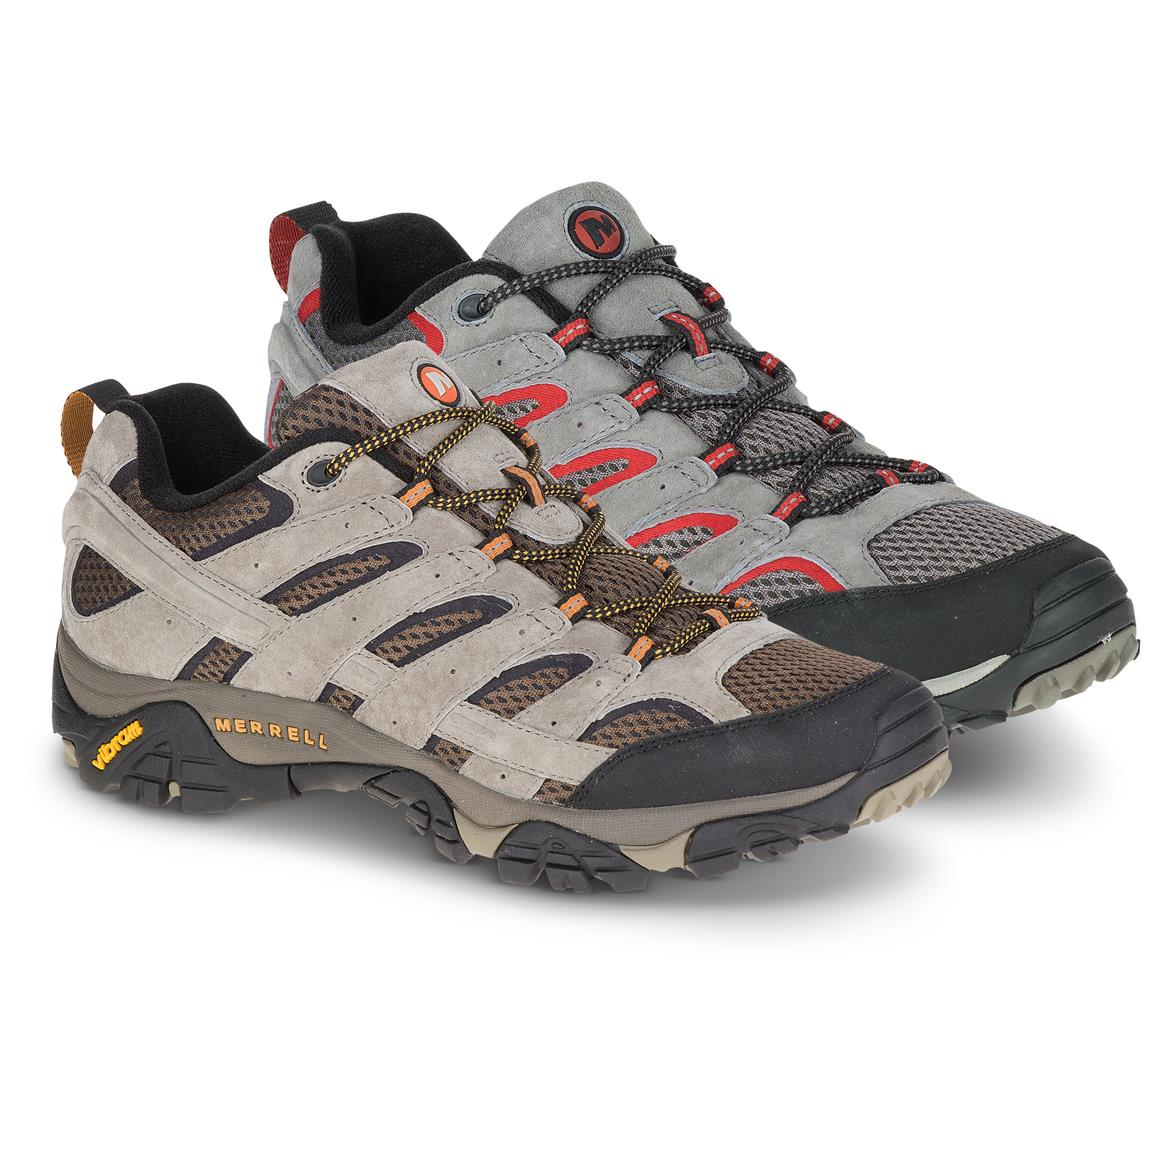 Merrell Men's Moab 2 Vent Hiking Shoes